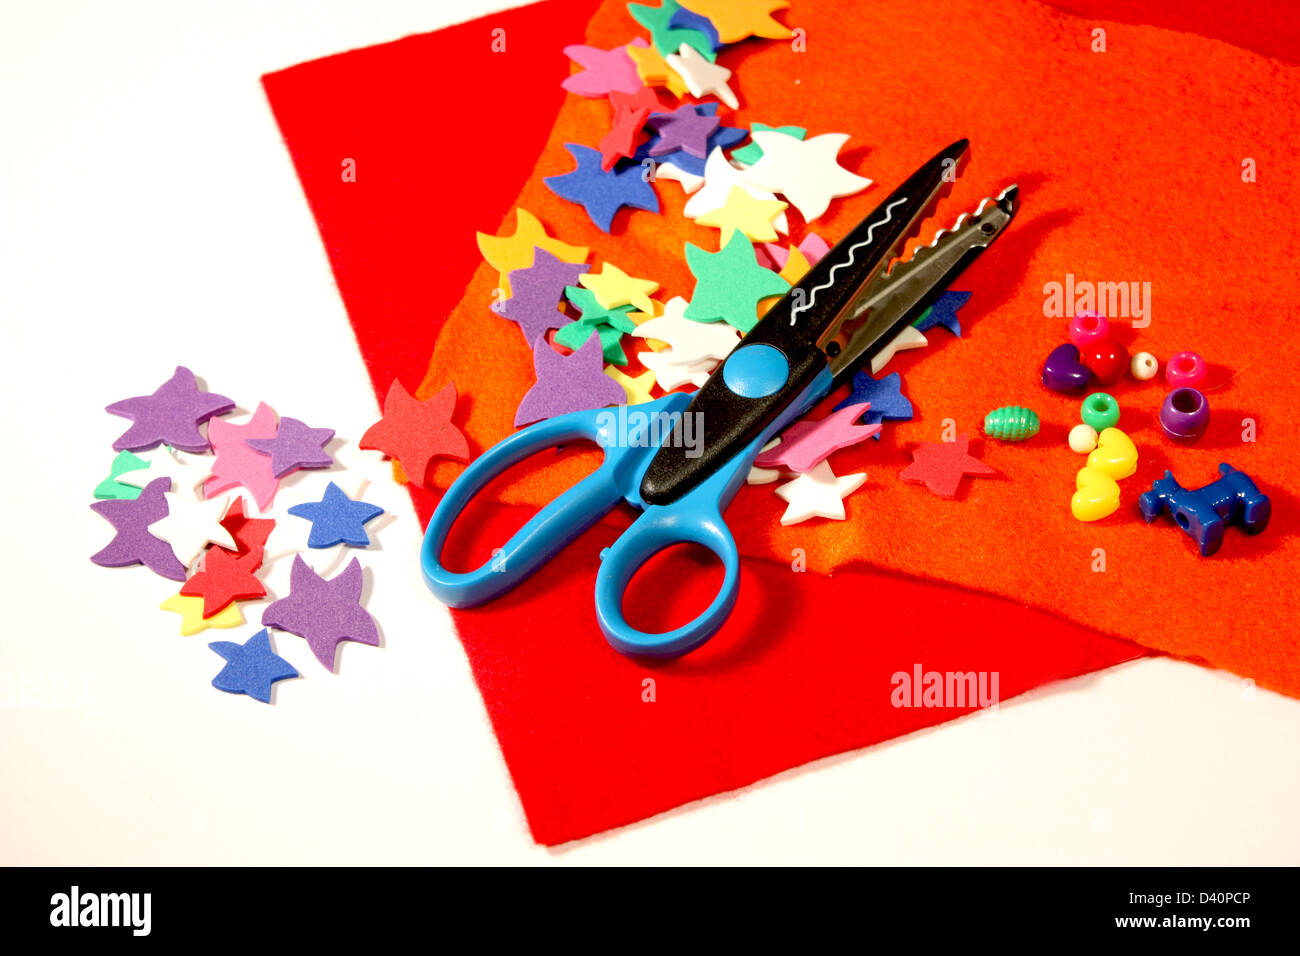 Arts and crafts felt with cutouts and scissors on white background - Stock Image